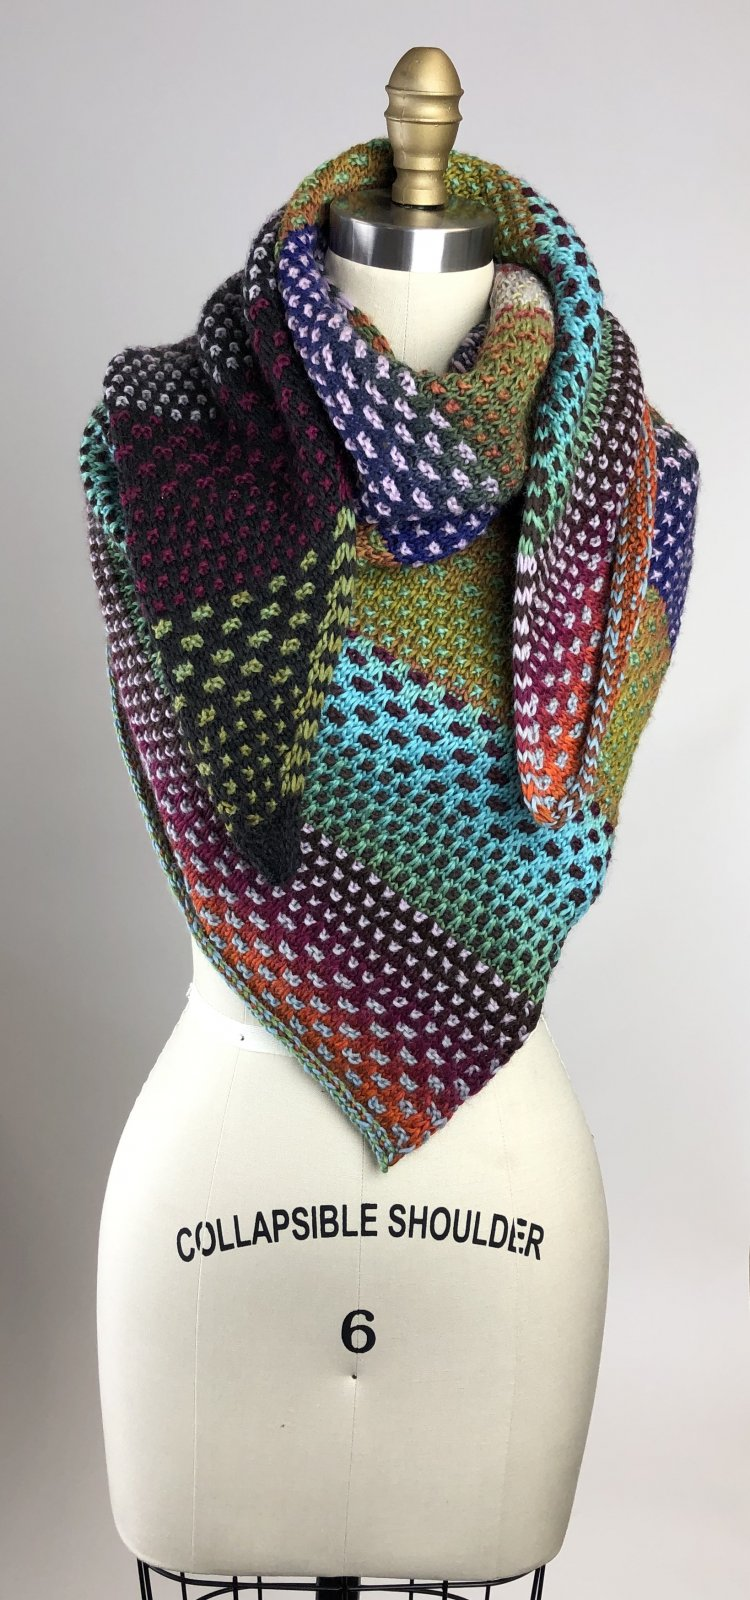 Night shift Shawl Kit designed by Andrea Mowry